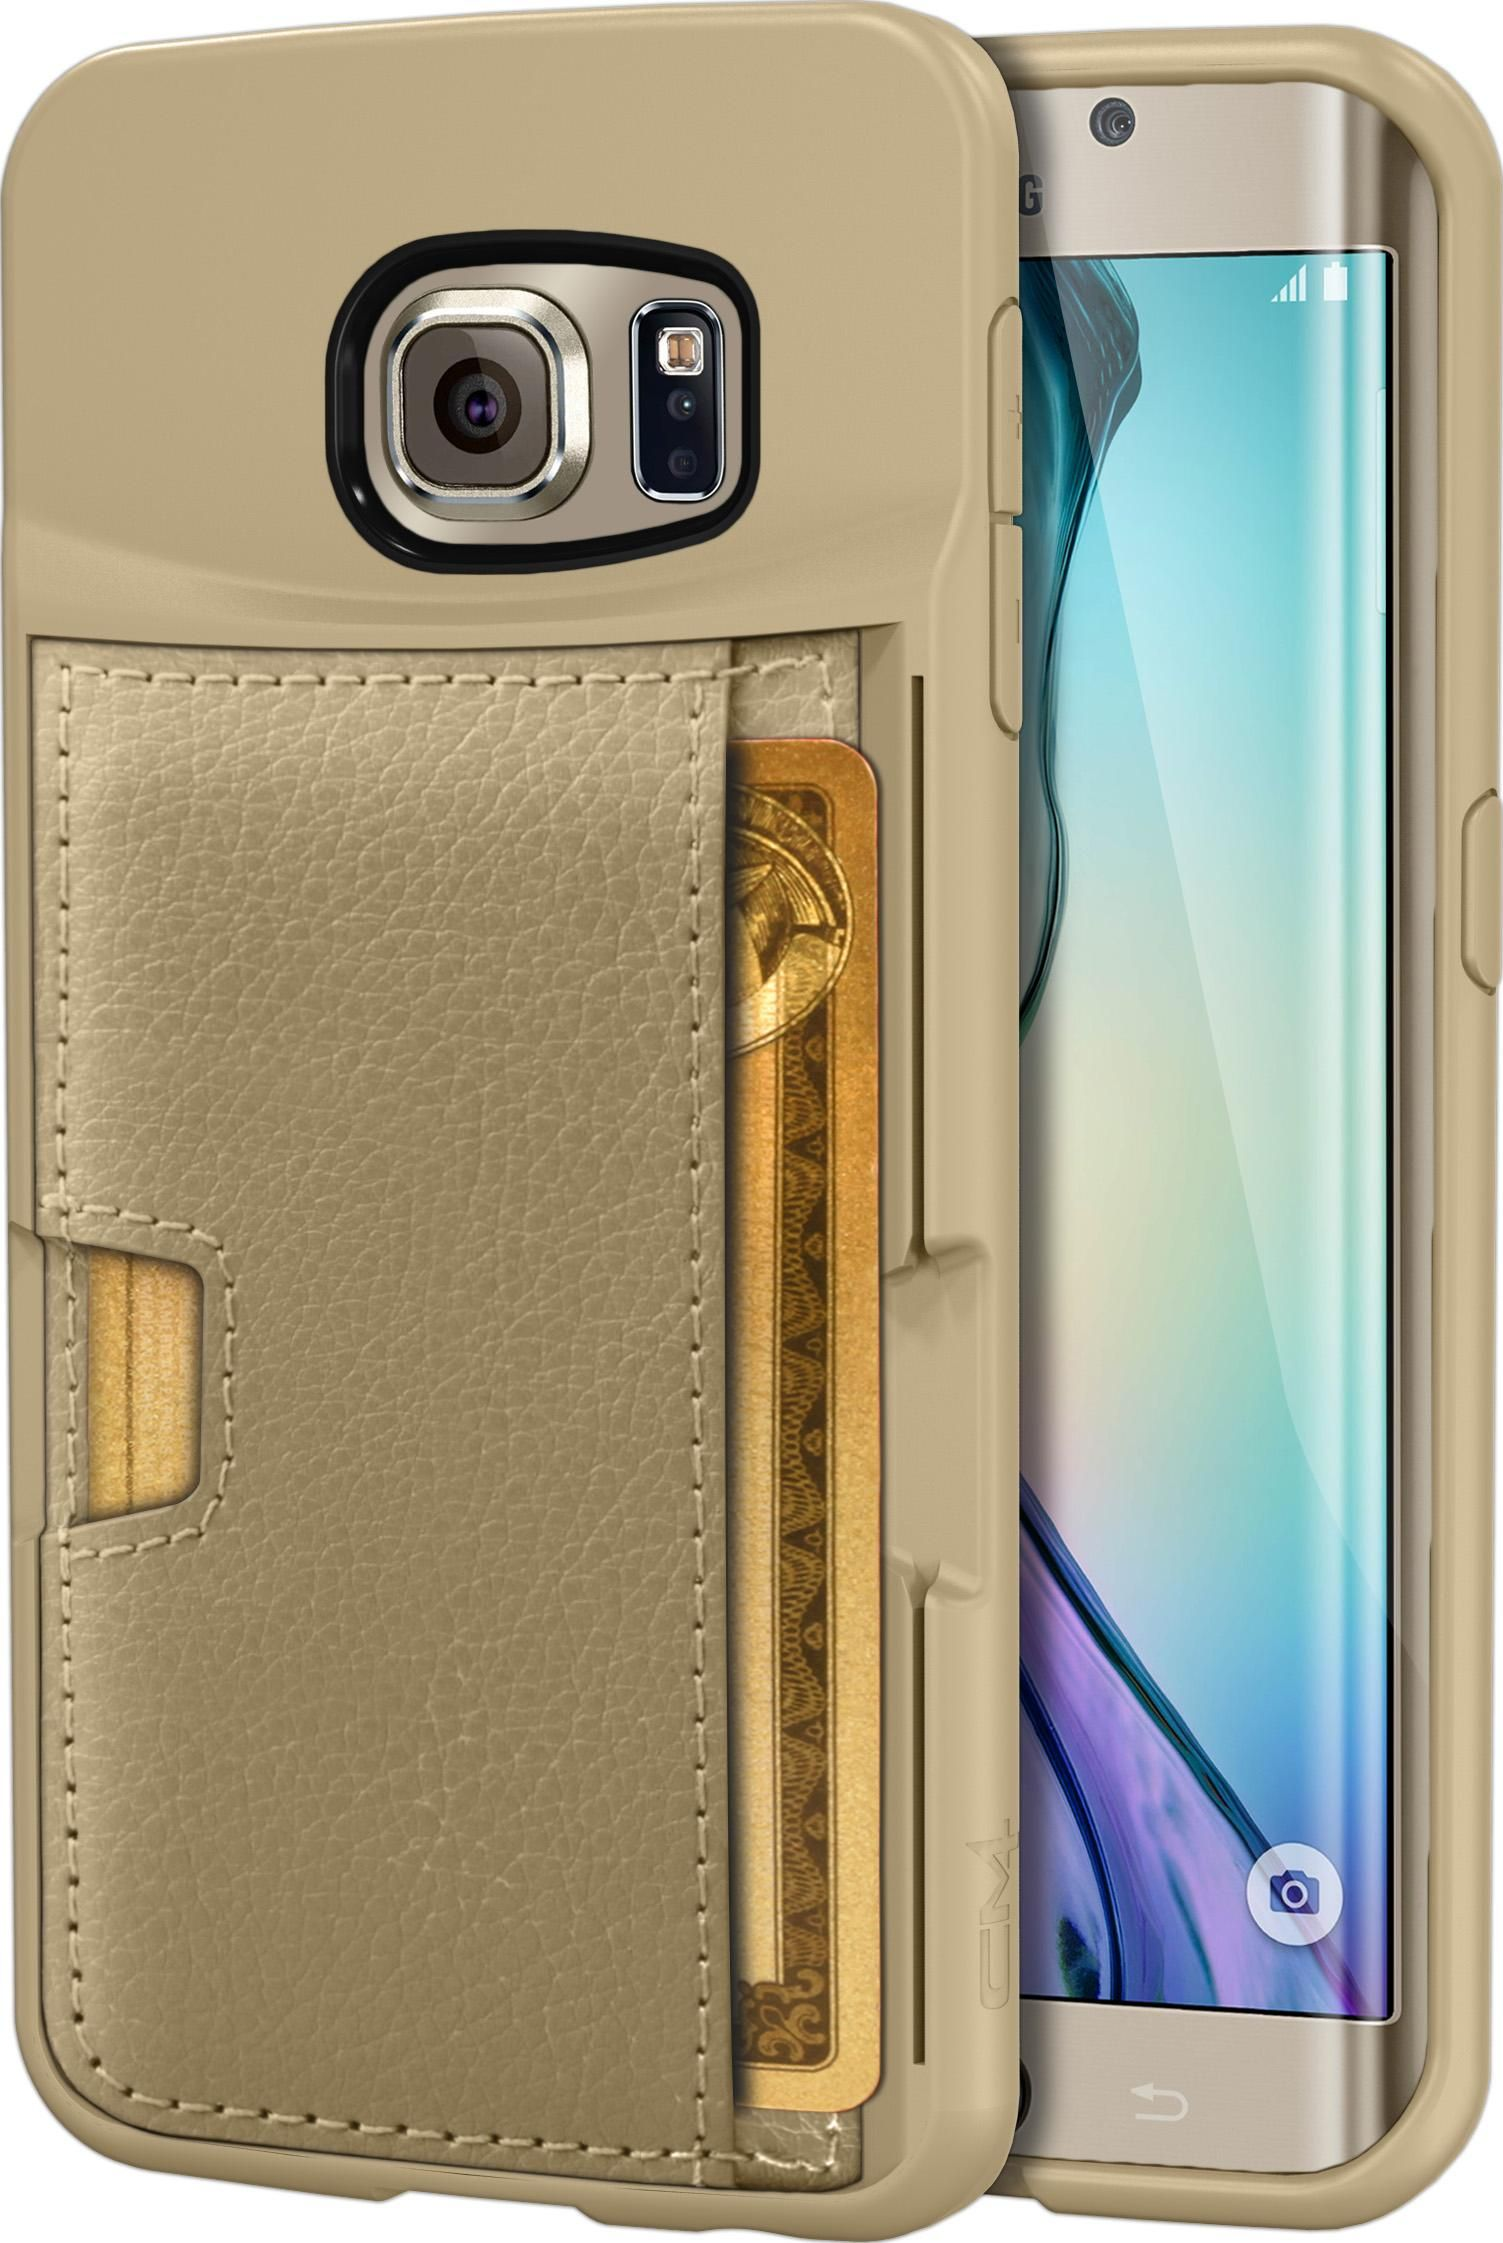 amazon com galaxy s6 edge wallet case q card case for samsungamazon com galaxy s6 edge wallet case q card case for samsung galaxy s6 edge by cm4 ultra slim protective *kickstand* credit card carrying case